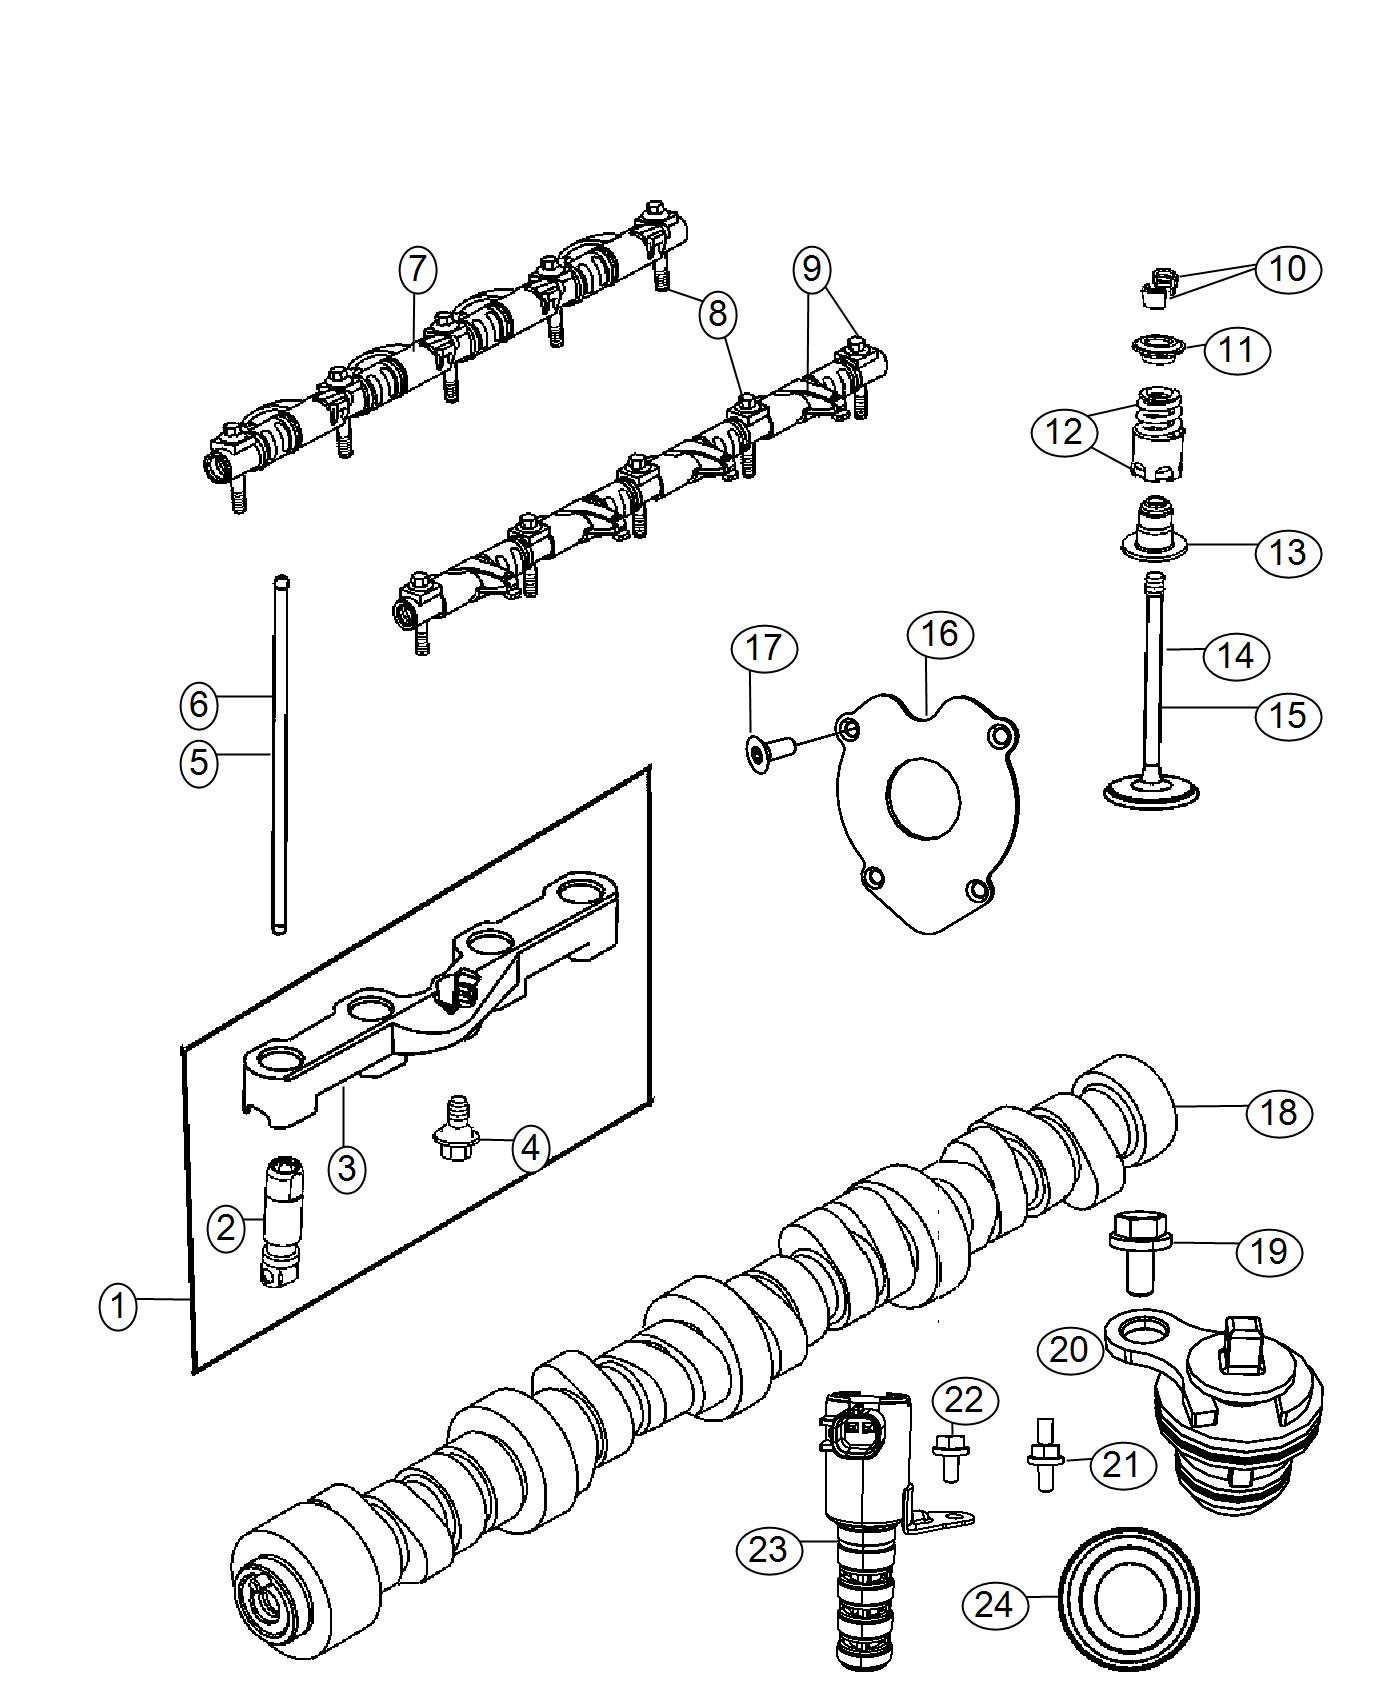 Ram Used For Lifters And Yoke Hydraulic Engine